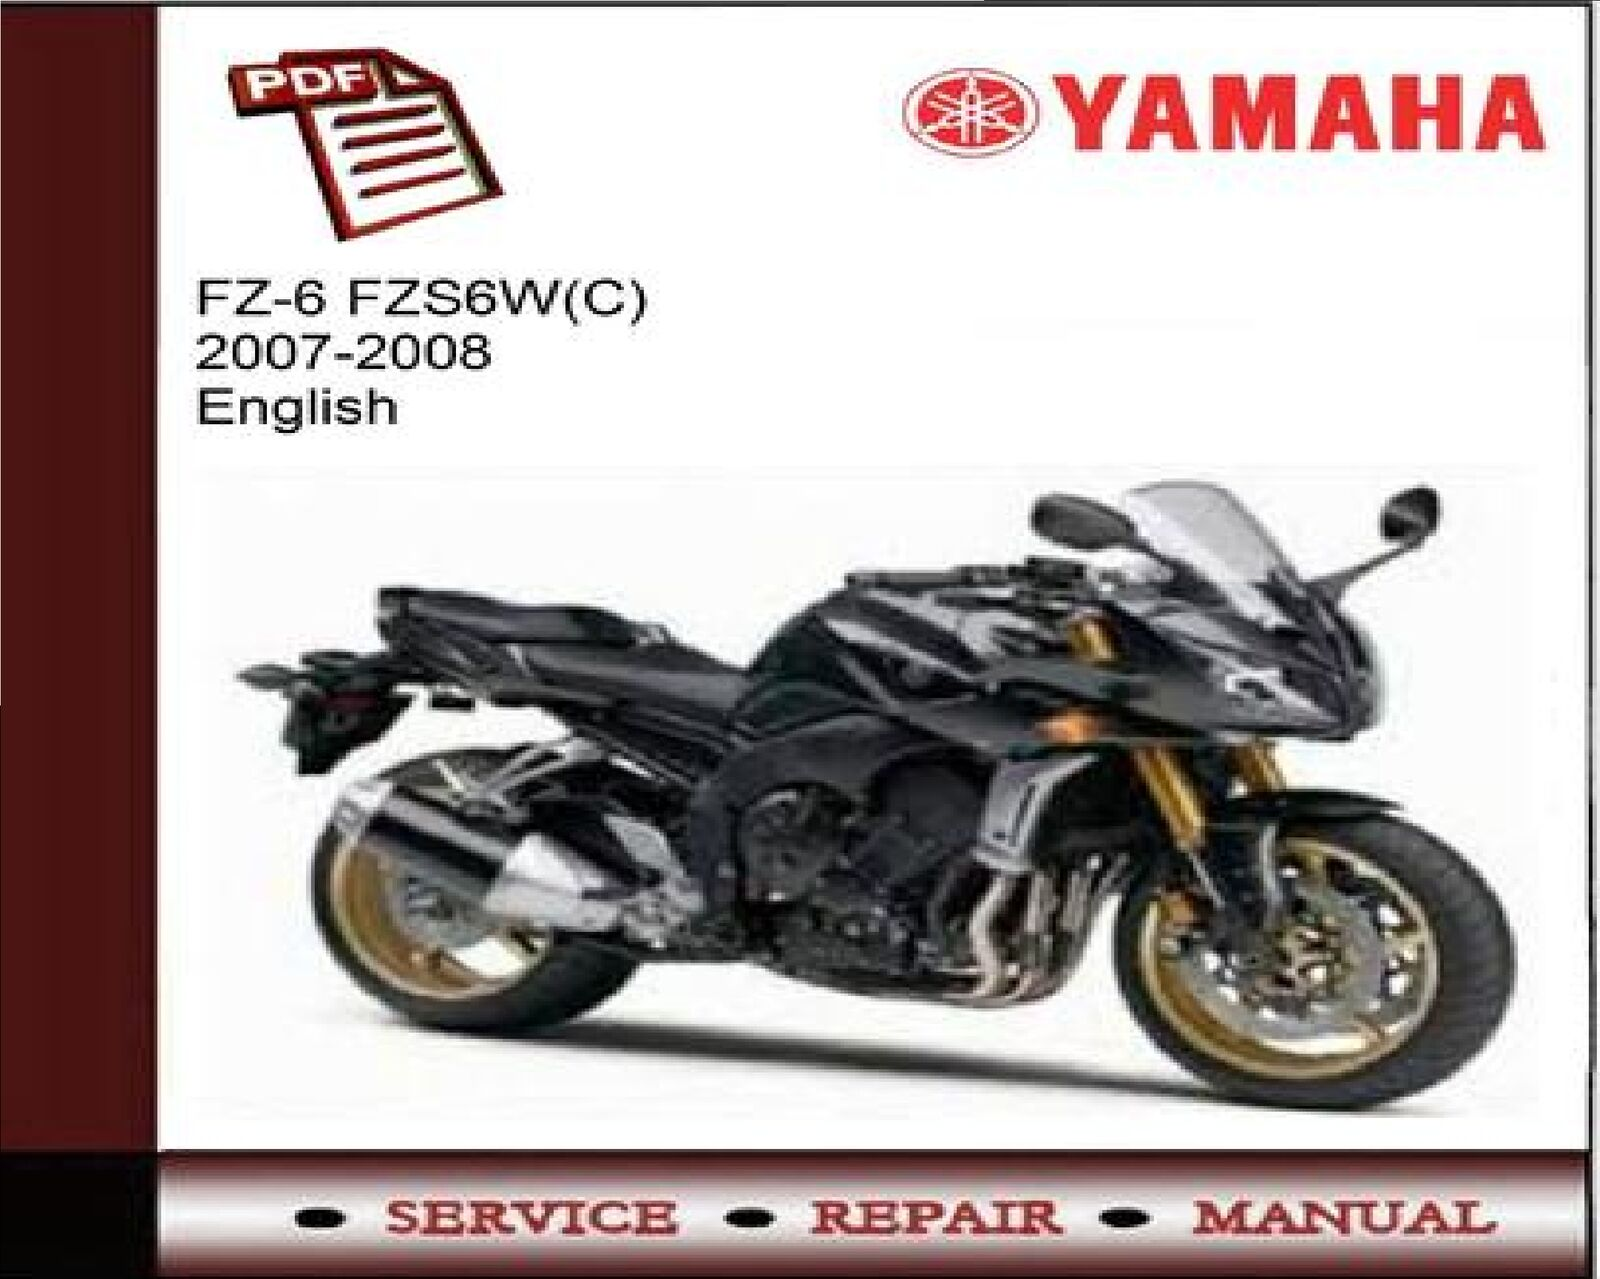 ... Array - yamaha fz6 manual rh yamaha fz6 manual elzplorers de